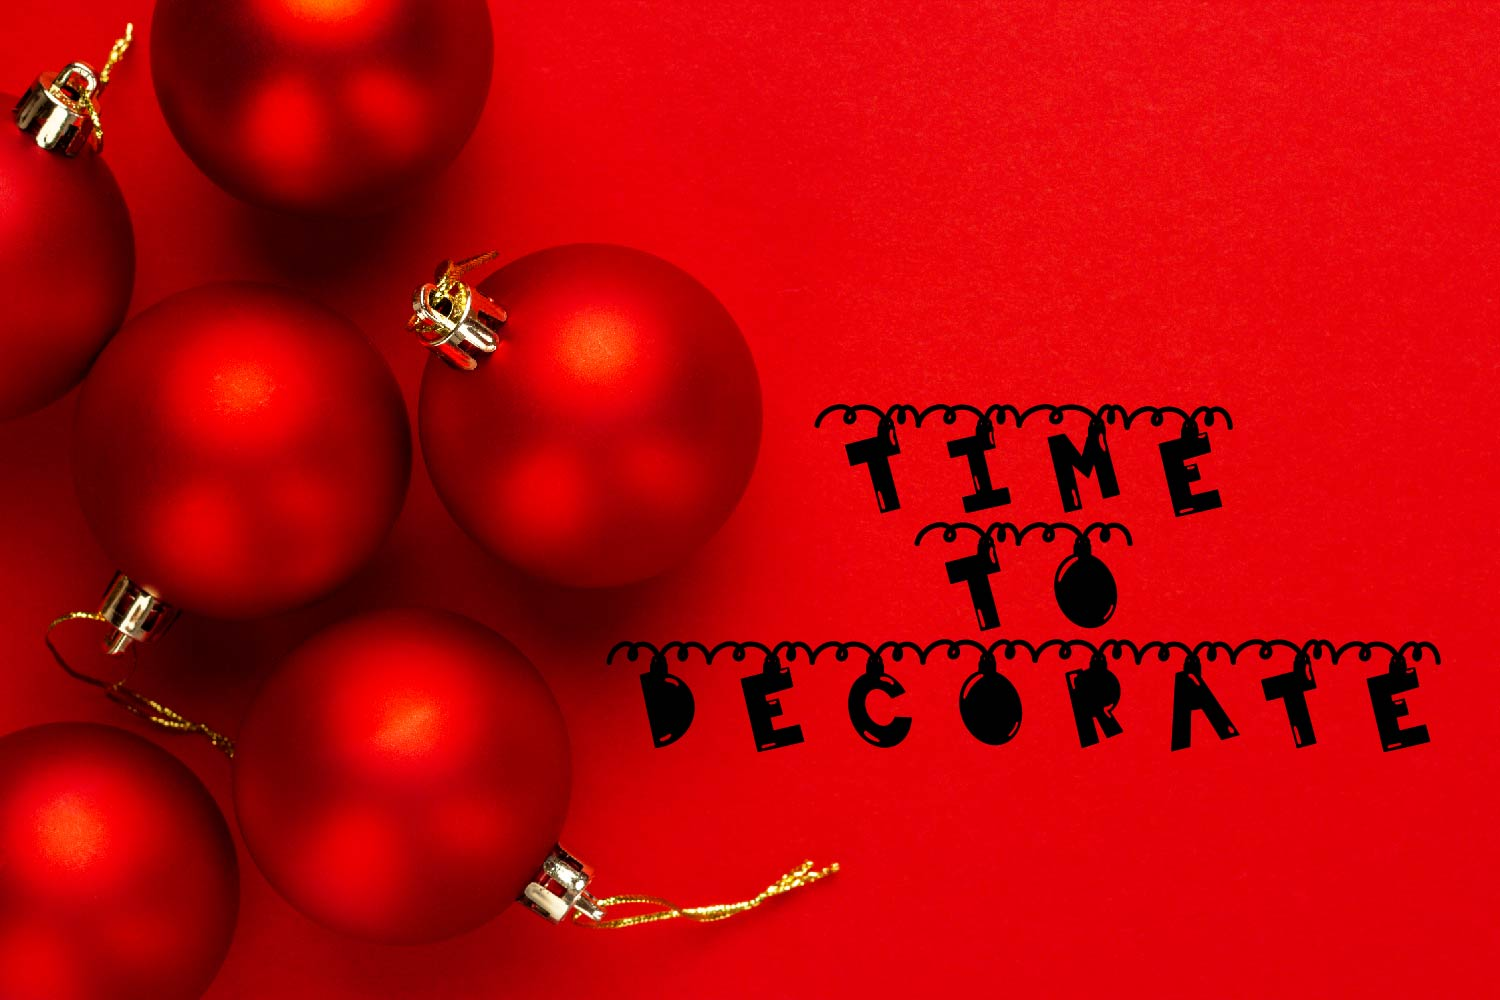 Chime - A Hanging Christmas Ornament Font example image 8